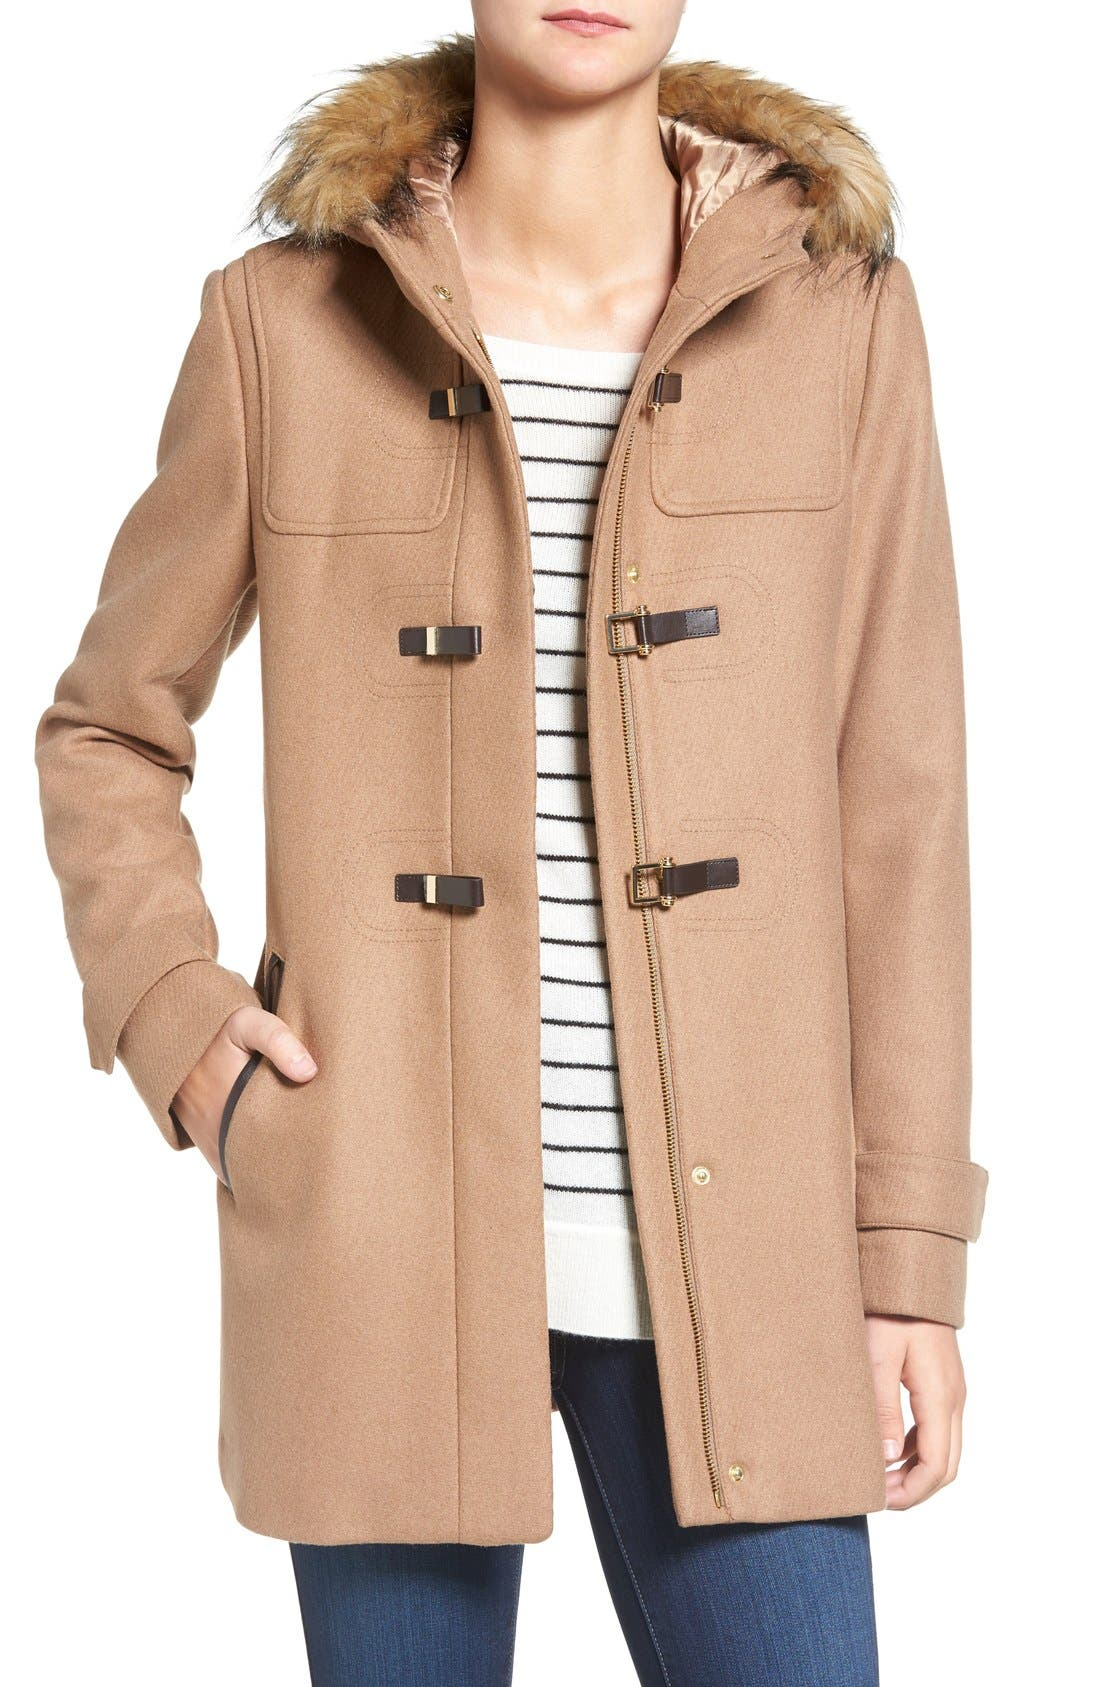 Cole Haan Hooded Duffle Coat with Faux Fur Trim,                             Main thumbnail 1, color,                             Camel